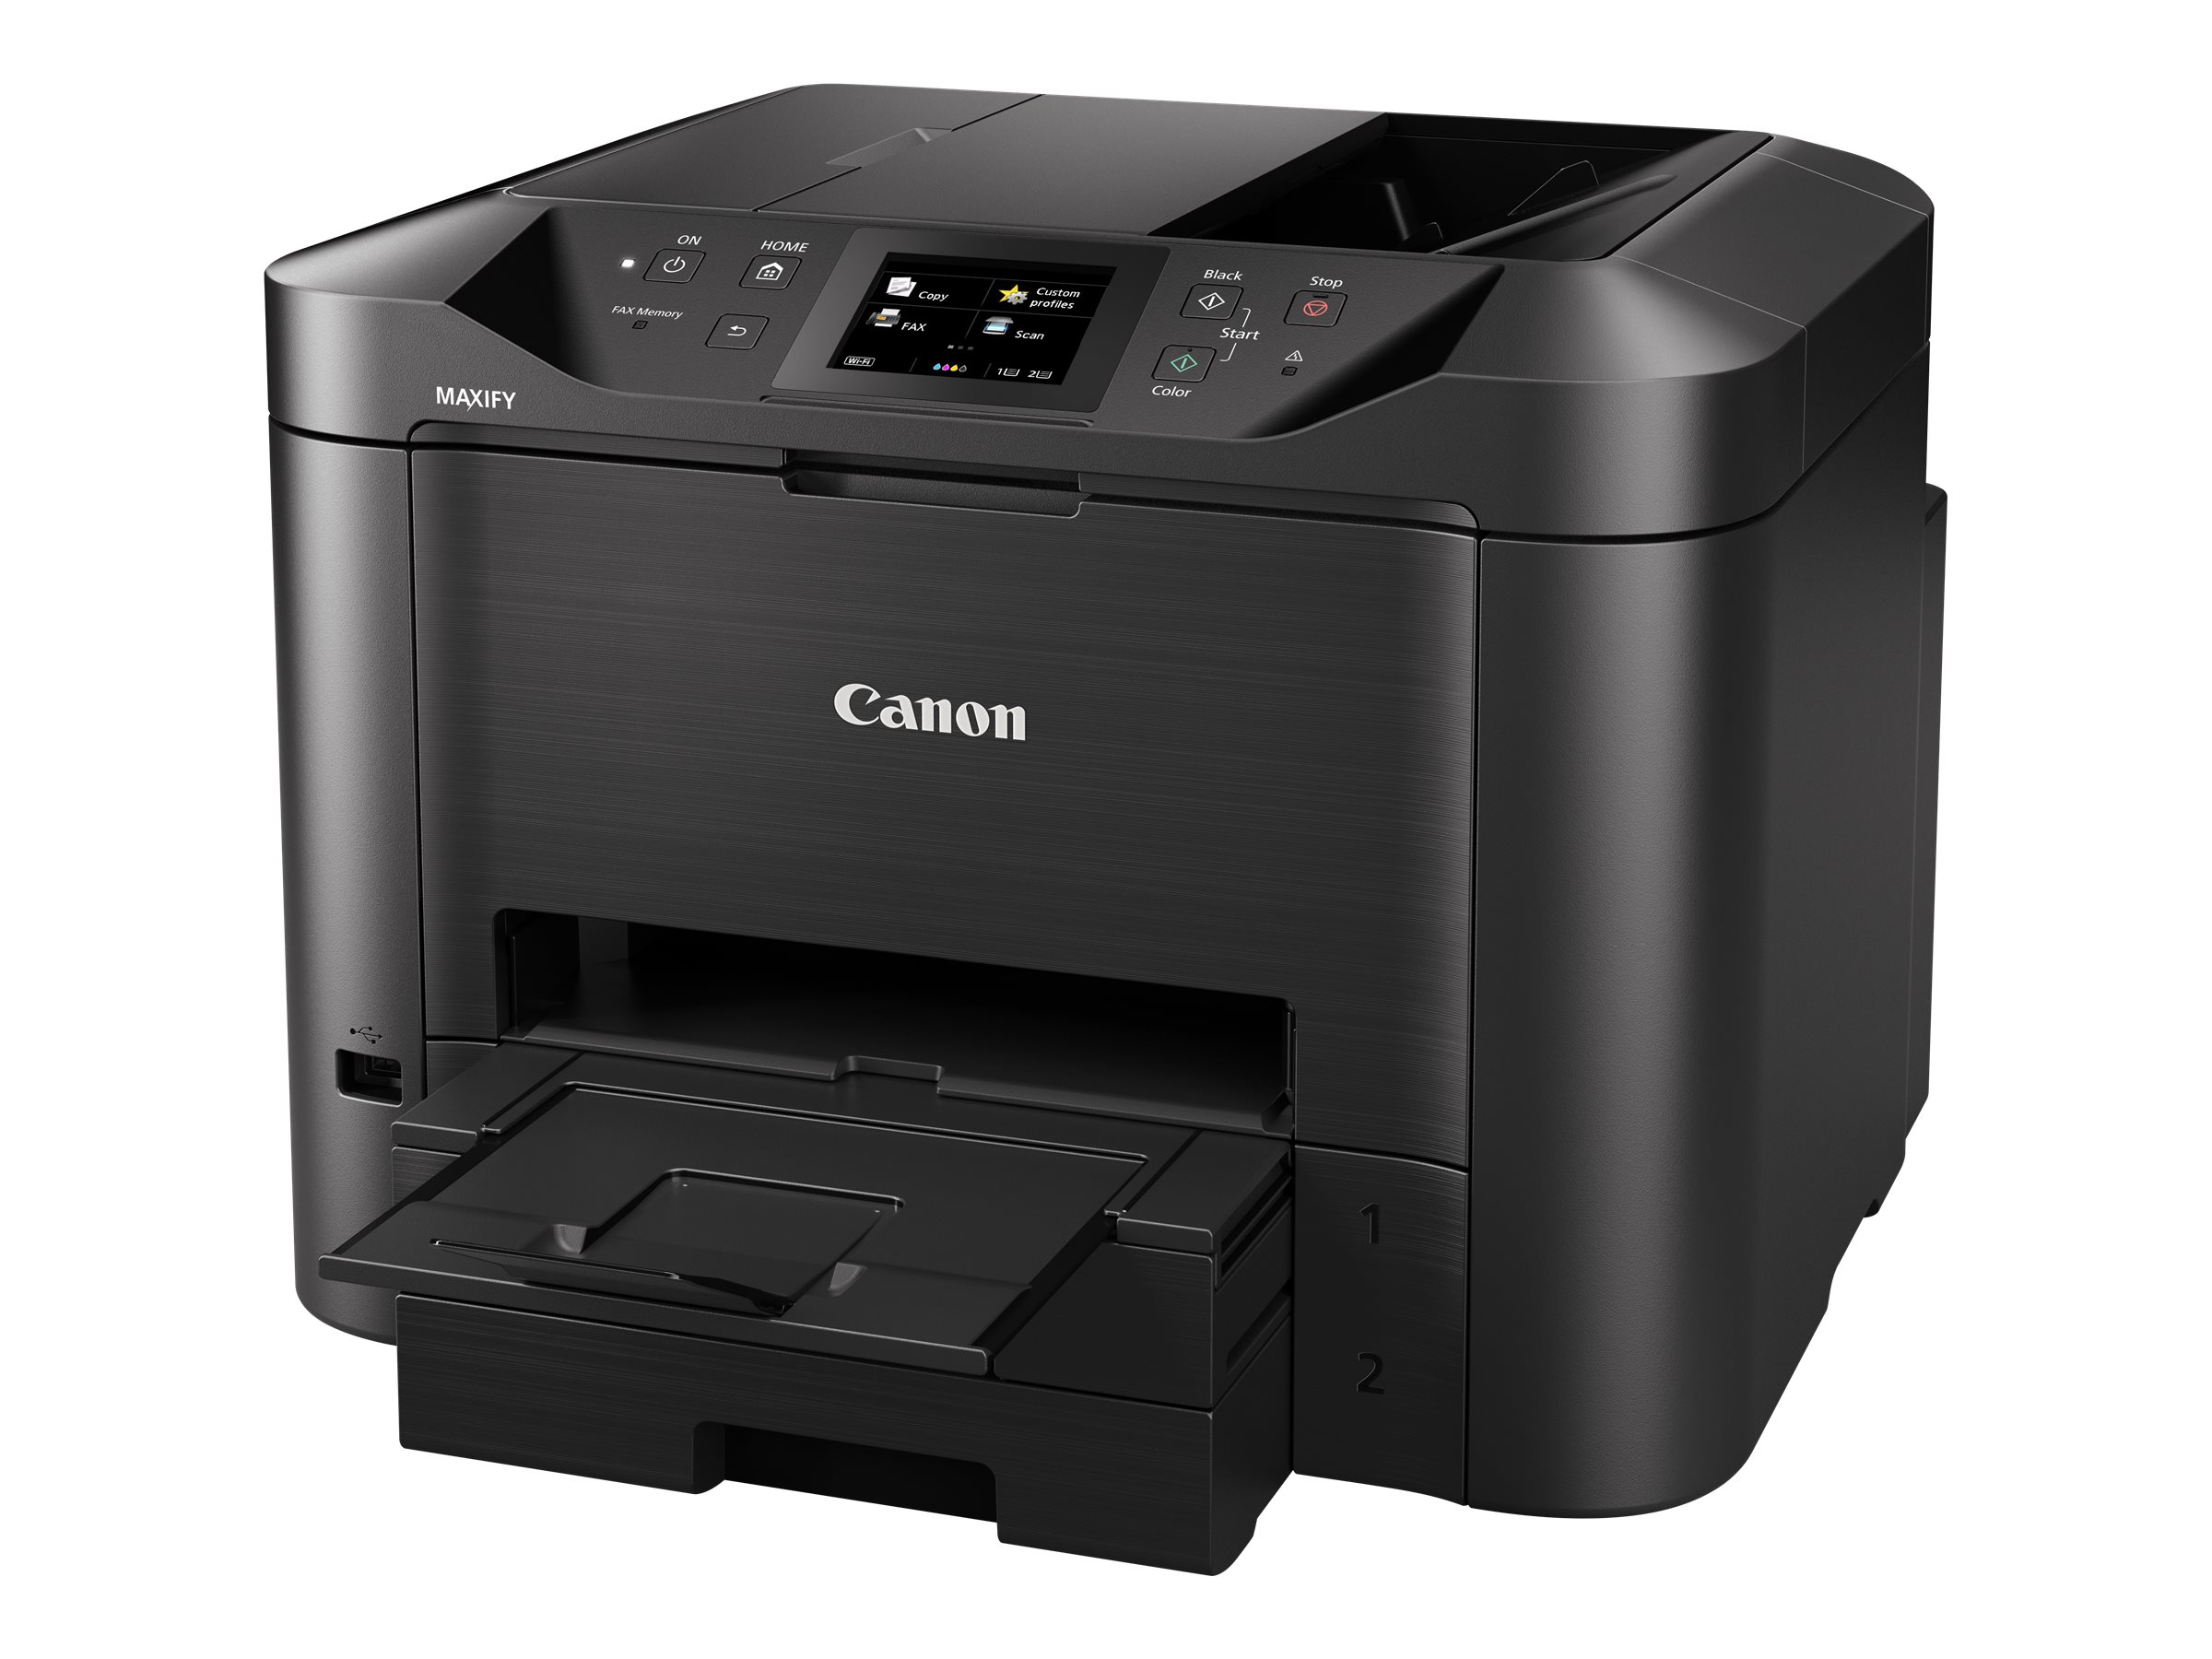 Canon MAXIFY MB5455 - Multifunktionsdrucker - Farbe - Tintenstrahl - A4 (210 x 297 mm), Legal (216 x 356 mm) (Original) - A4/Legal (Medien)